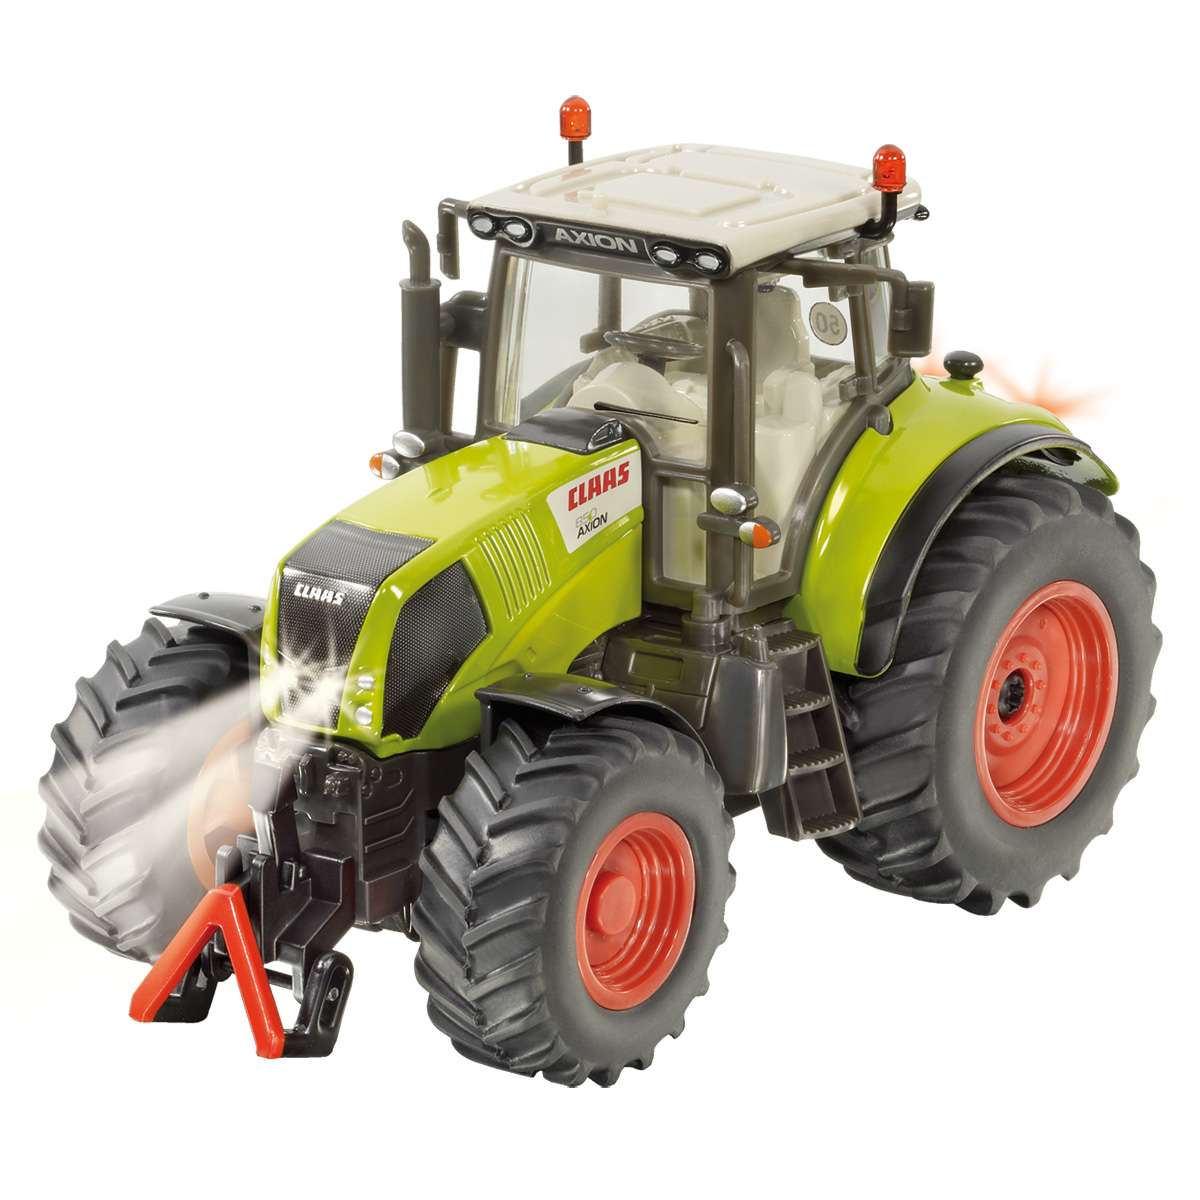 Claas Axion850 リモートコントロールセット 1/32(ジク・SIKU)